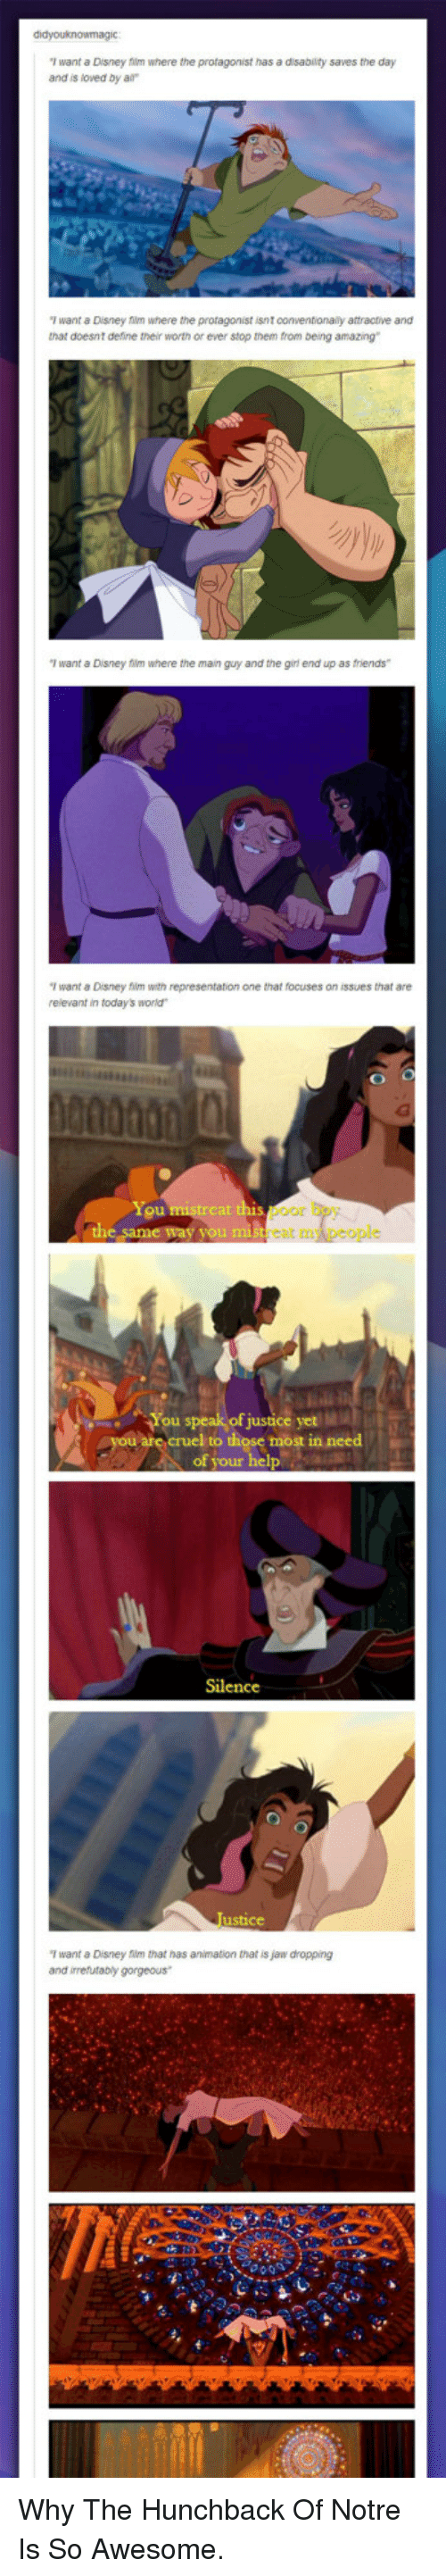 """hunchback: T want a Disney film where the protagonist has a disabiity saves the day  and is loved by a  T want a Disney film where the proragonist isnt conventionaly attractive and  that doesnt deline their worth or ever stop tnem from being amazing  T want a Disney 1m where the main guy and the girl end up as friends  T want a Disney im with representation one that focuses on issues that are  relevant in today's world""""  You  or  cat n  You speak of justice yet MI  cruel to those most in need  of your  Silence  T want a Disney film that has animation that is jaw dropping  and irrefutably gorgeous <p>Why The Hunchback Of Notre Is So Awesome.</p>"""